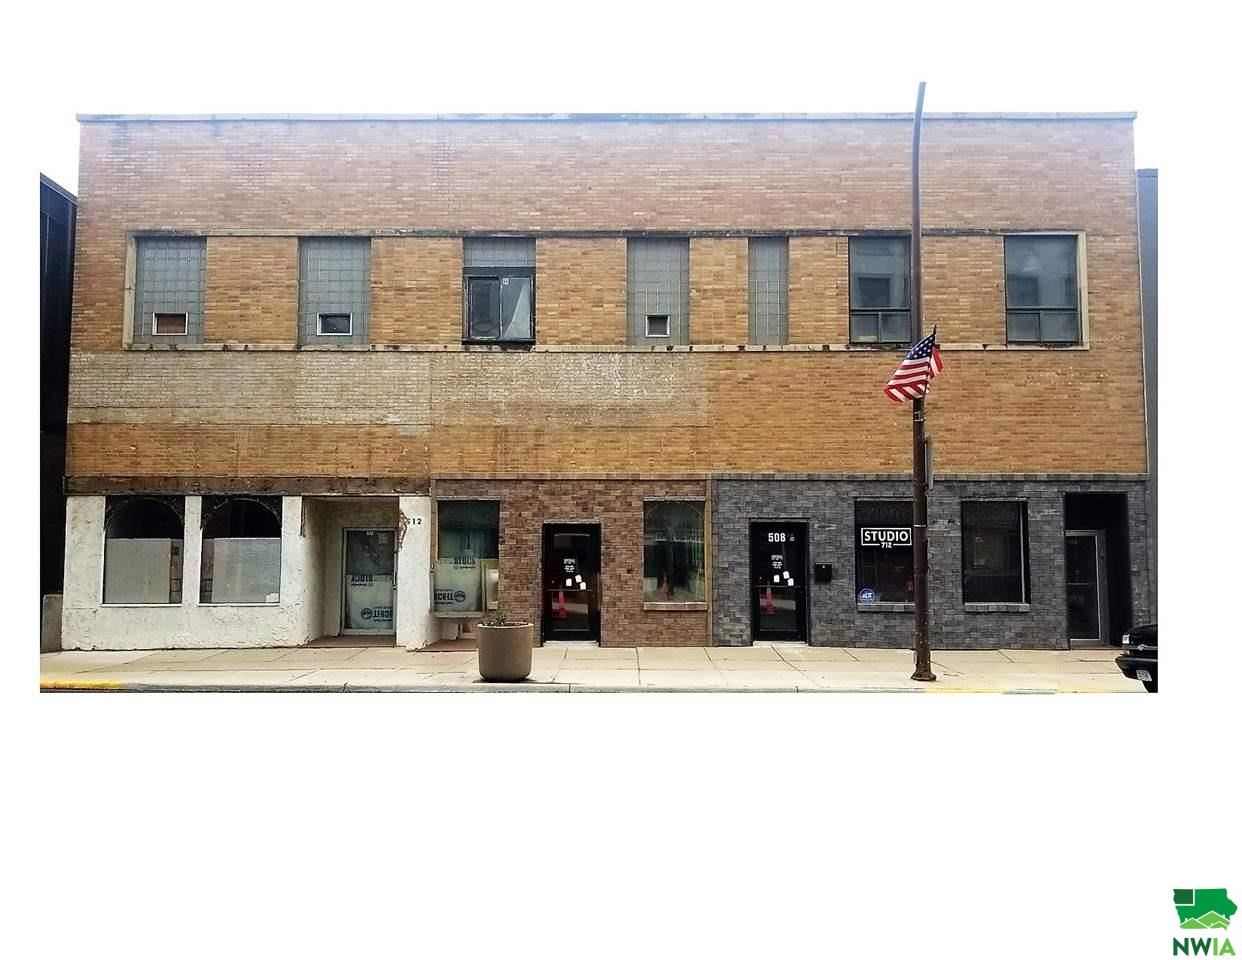 Photo for 508-12 5th Street 508-12, Sioux City, IA 51101 (MLS # 800443)